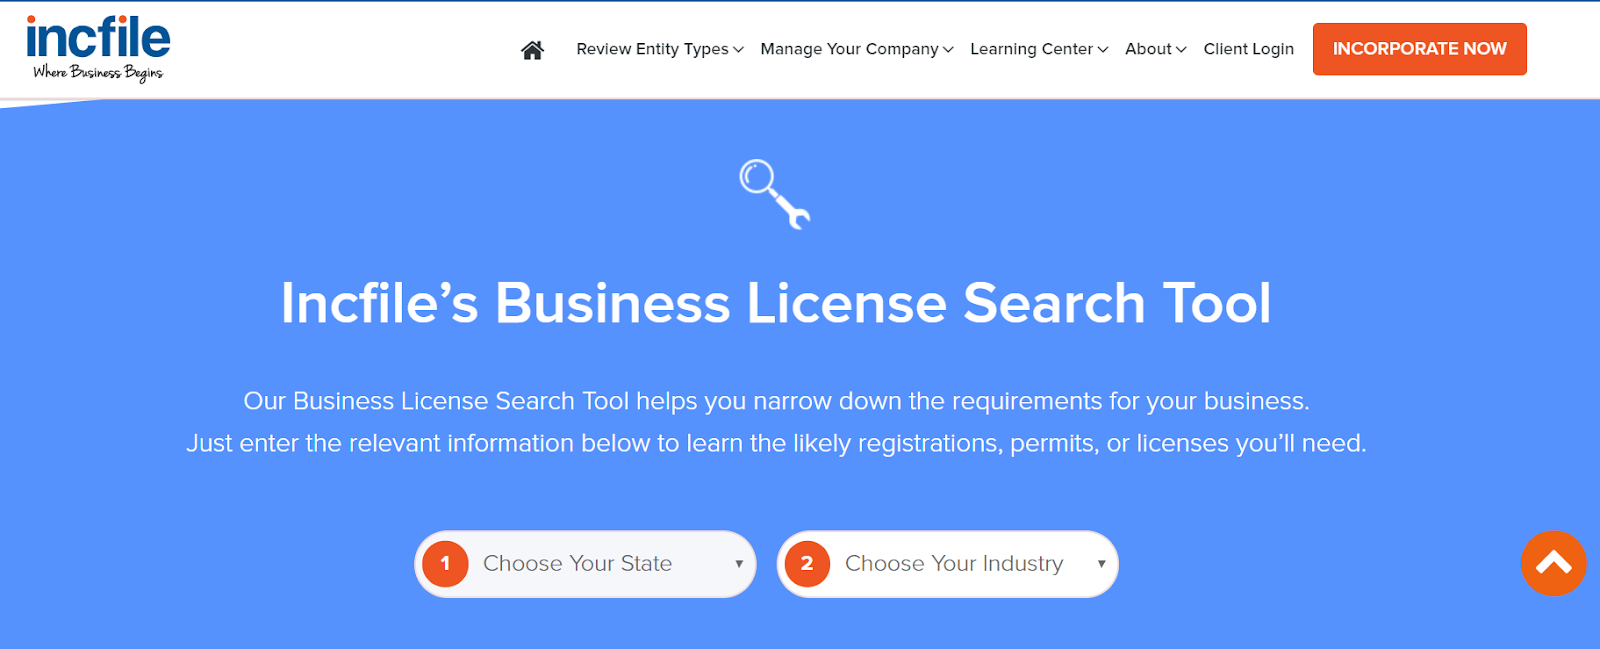 incfile business license search tool interface